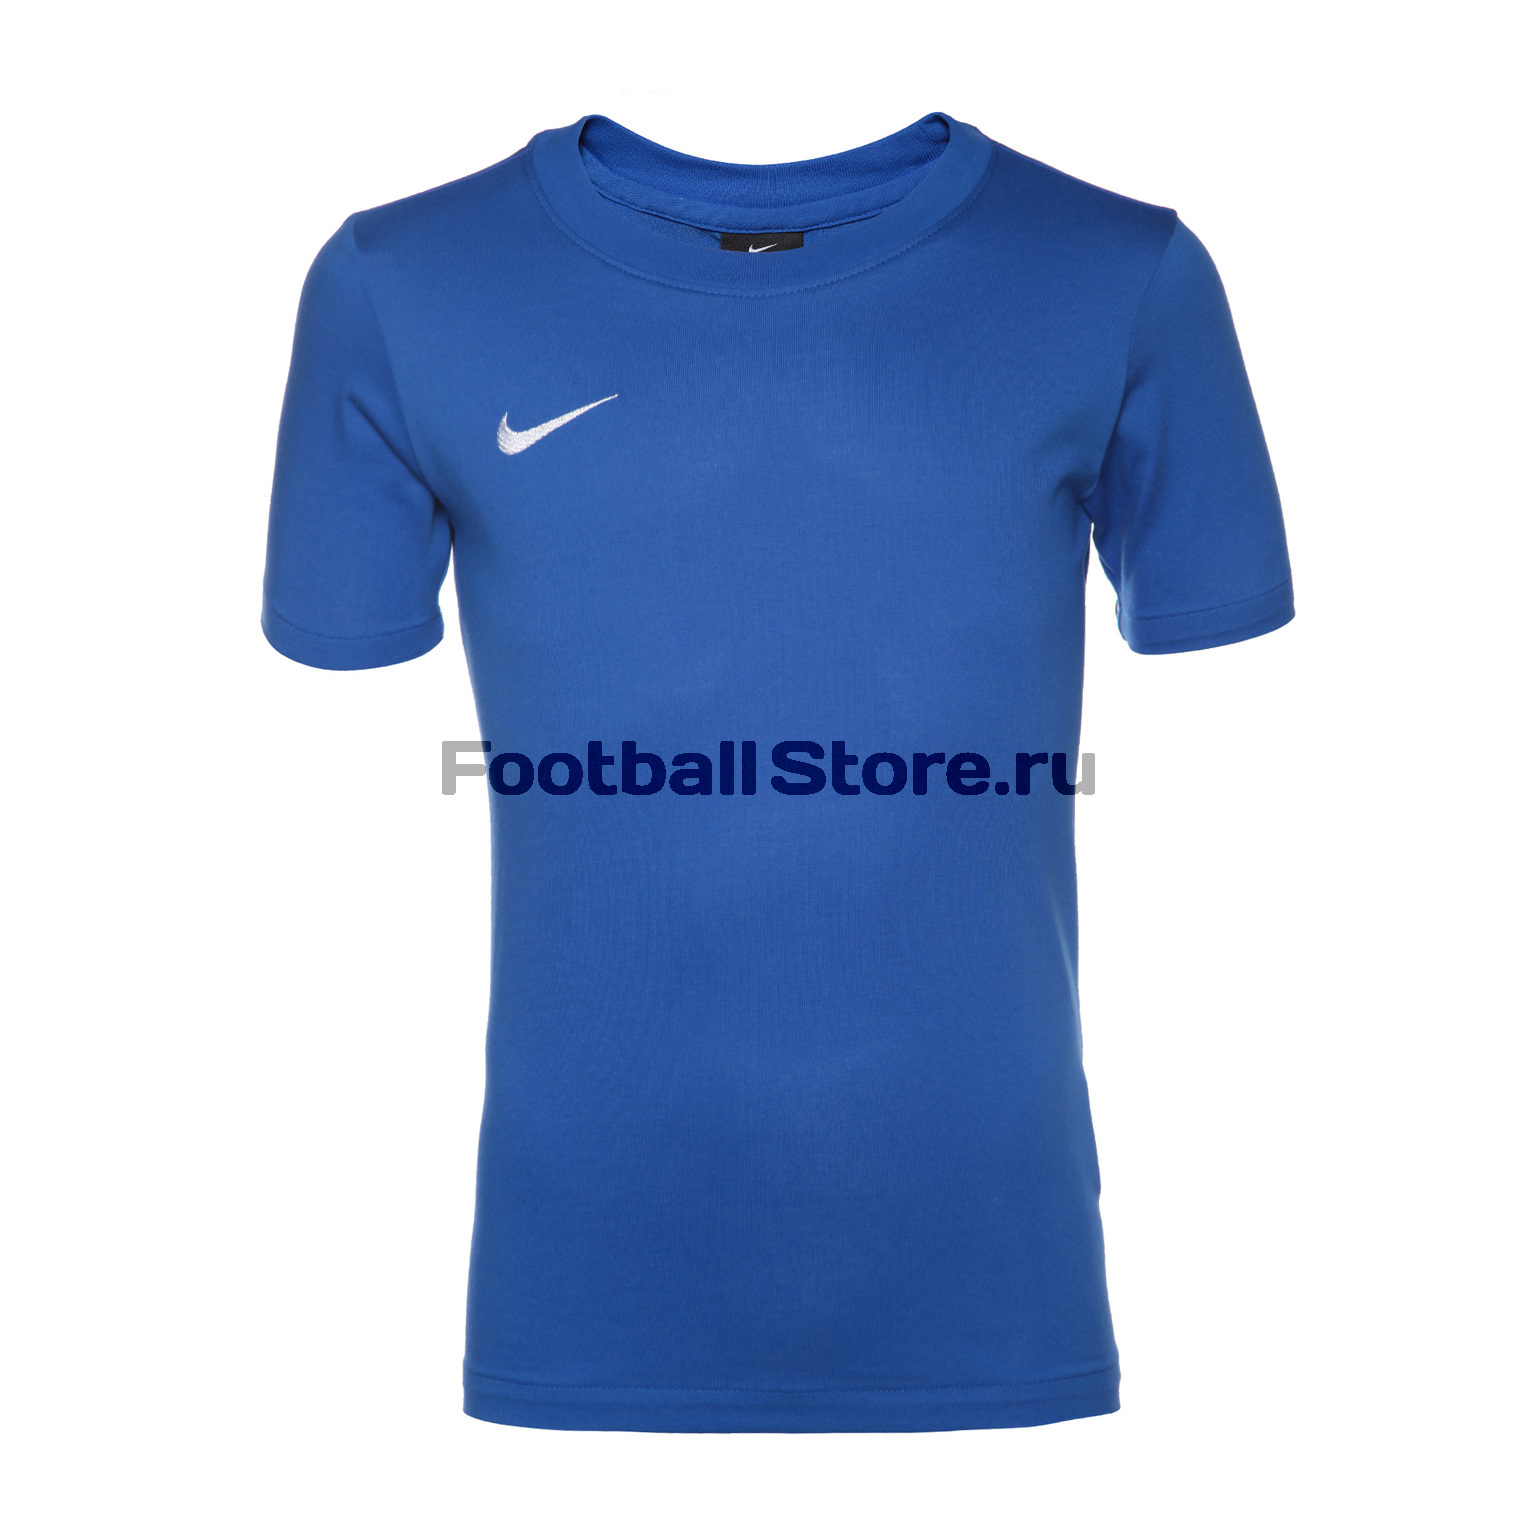 Футболка Nike JR Team Club Blend Tee 658494-463 pcb плата diy 20mm 7135 8 3a